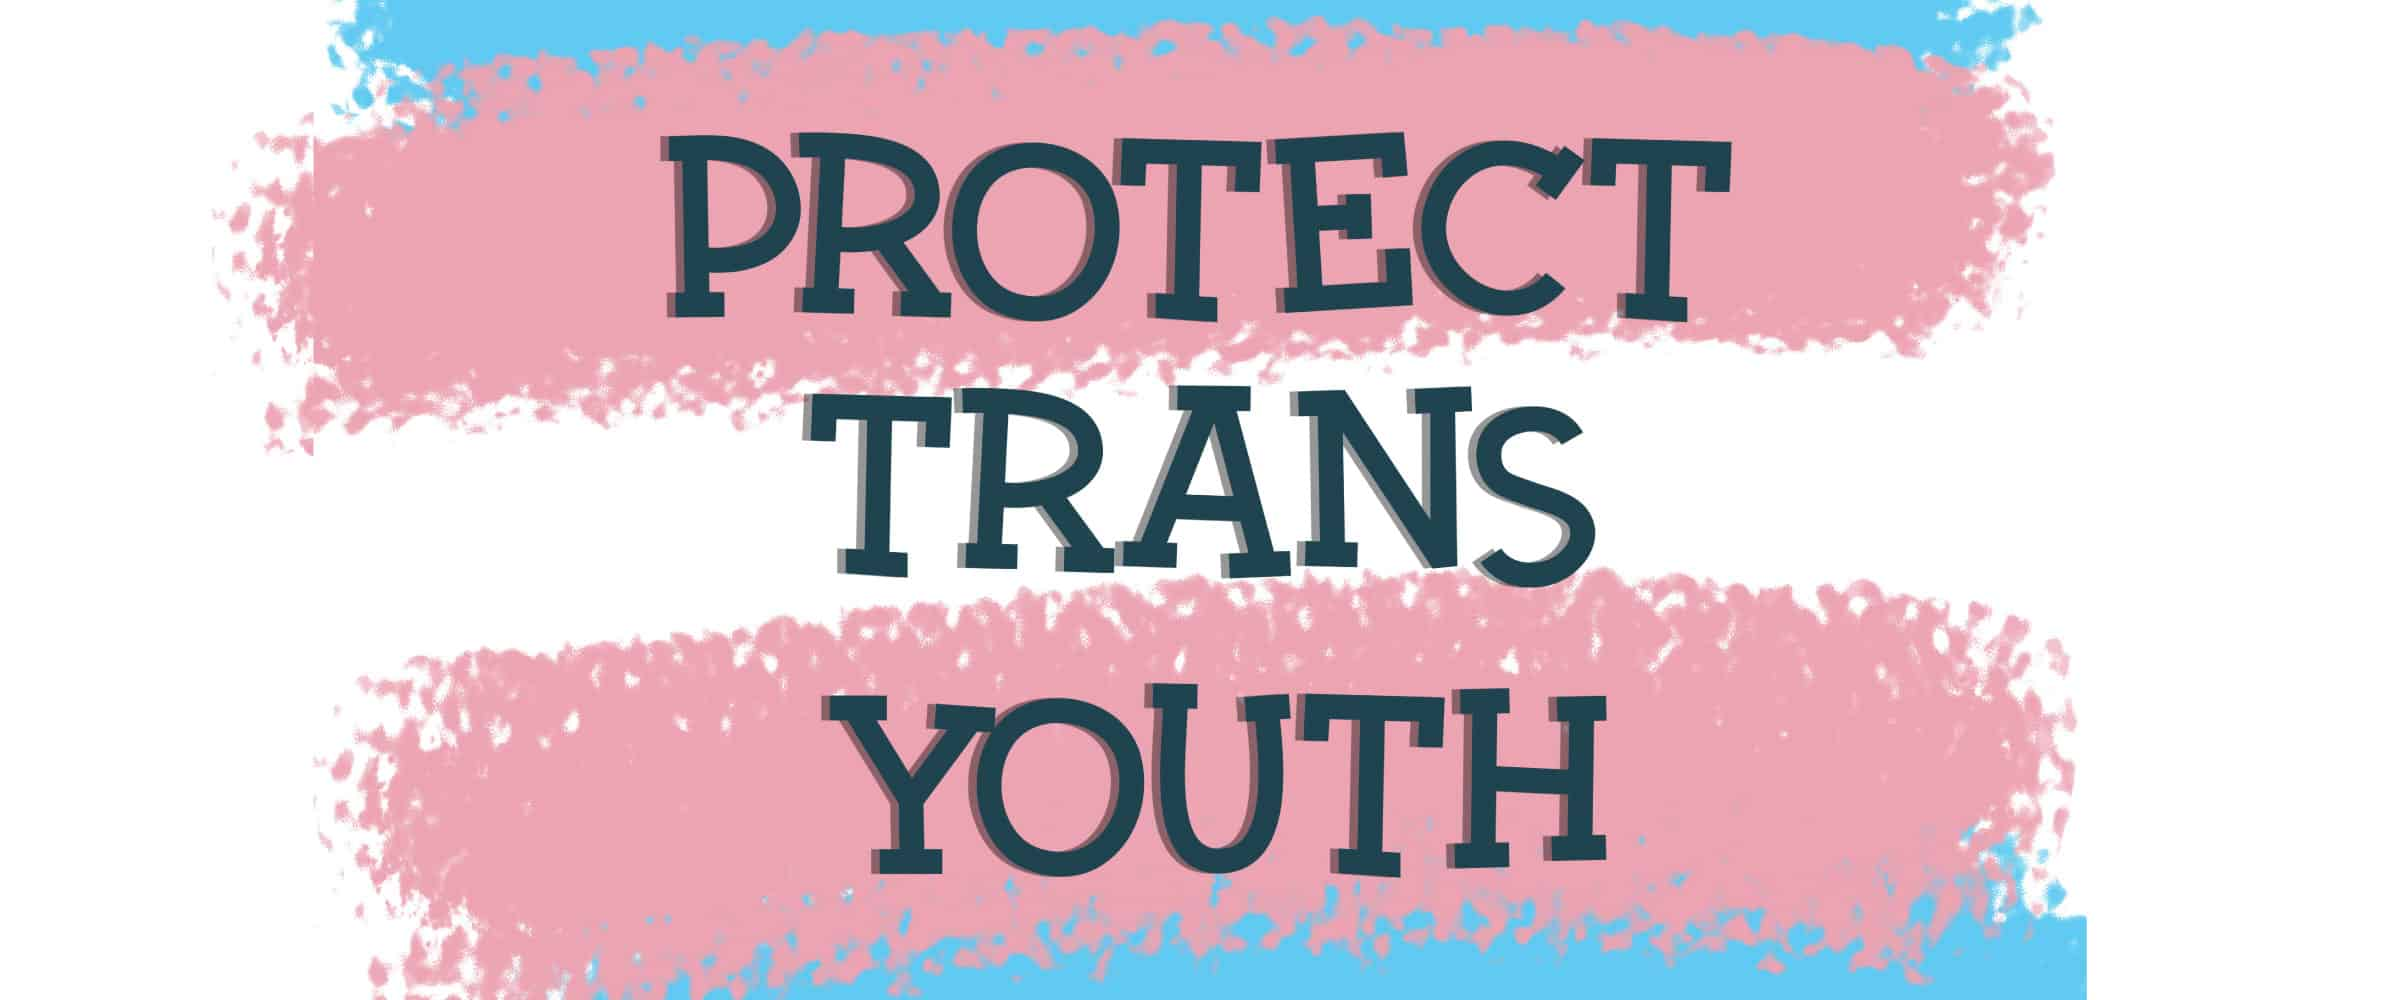 protect trans youth blog banner